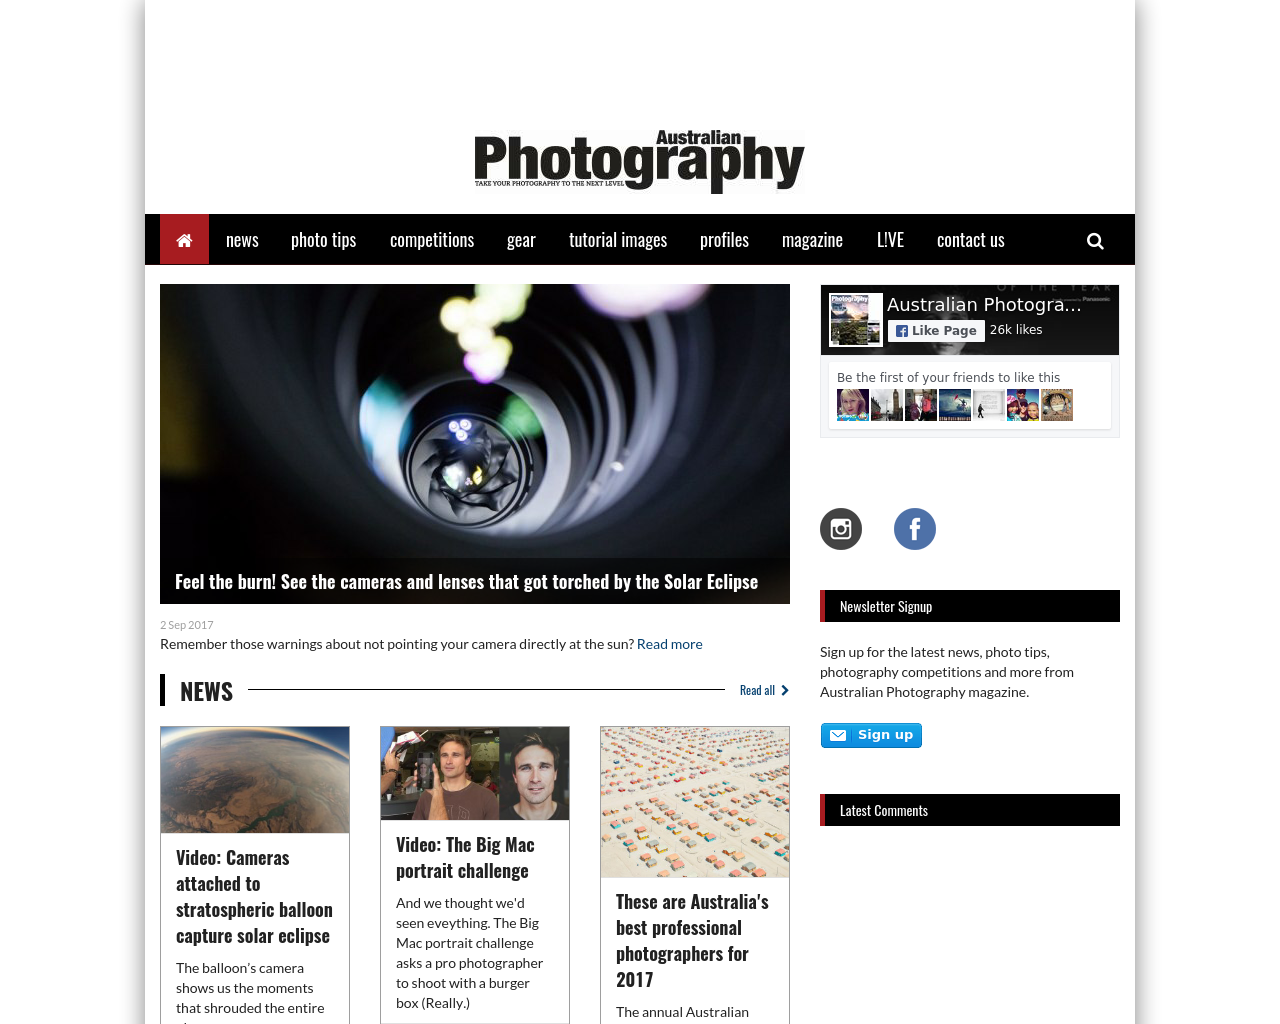 Australian-Photography-Advertising-Reviews-Pricing